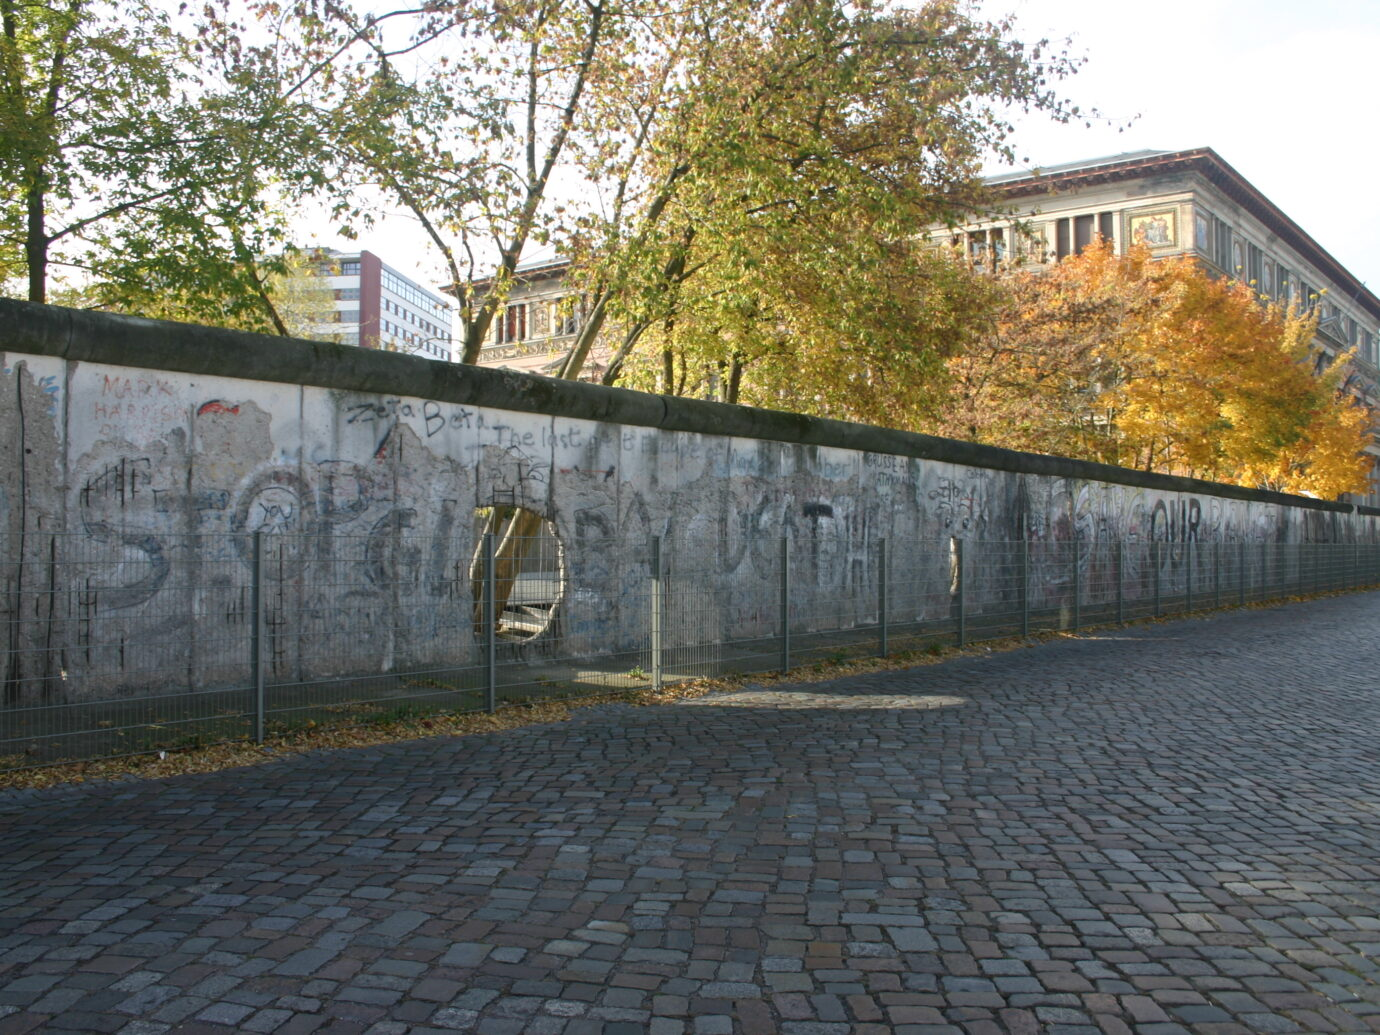 A fenced off section of the Berlin Wall along a cobblestone road.